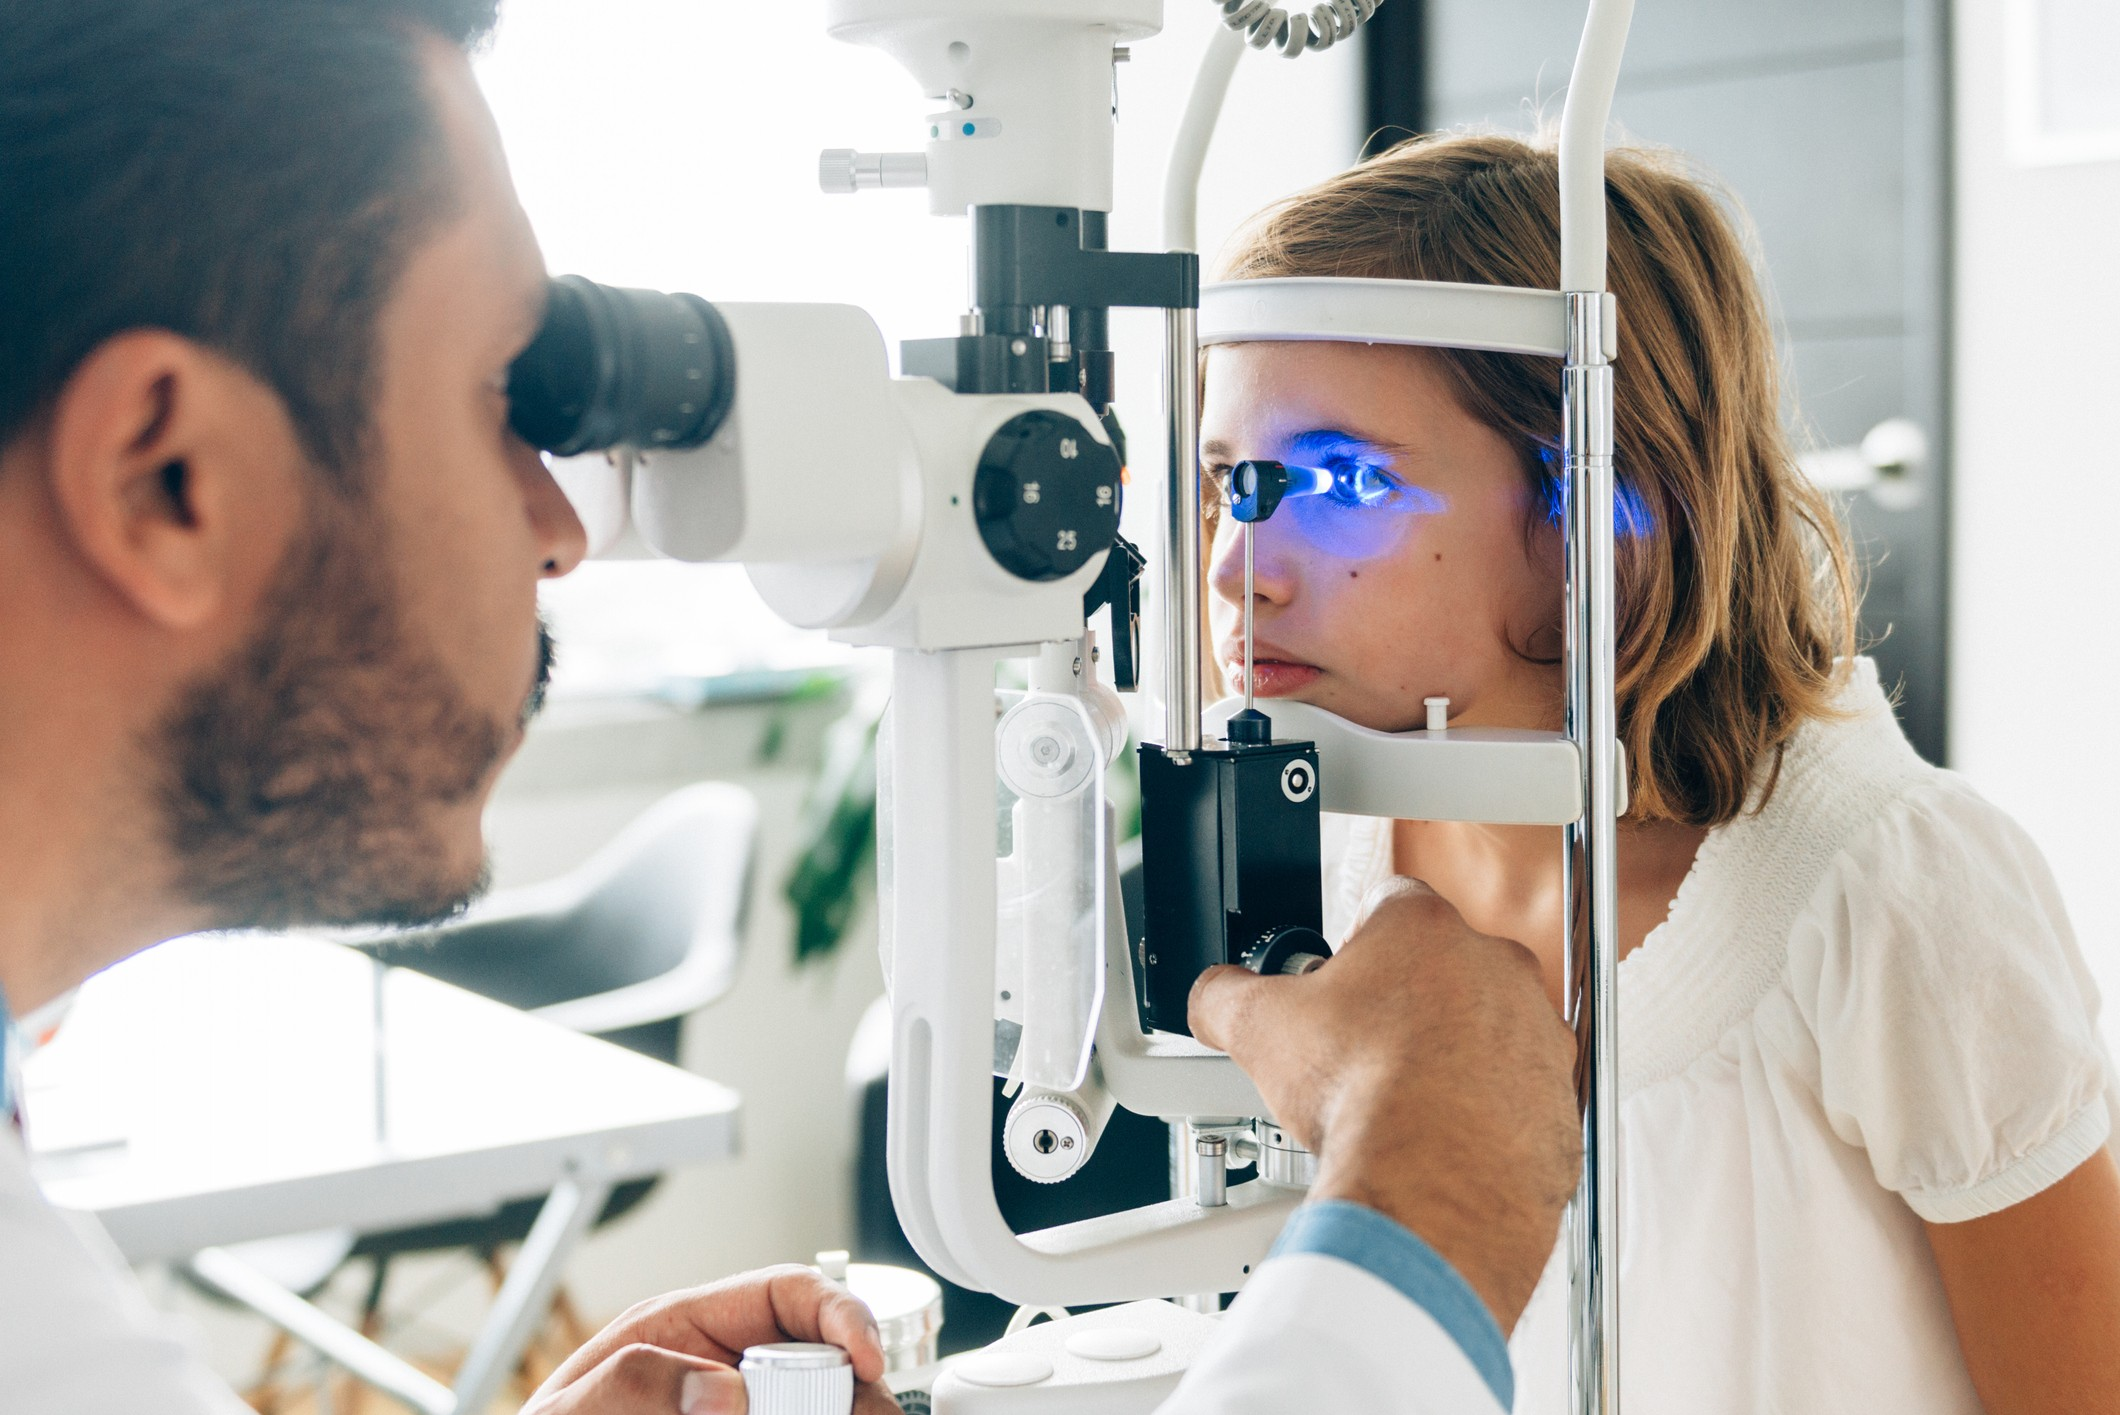 Vision and Eye Health facts